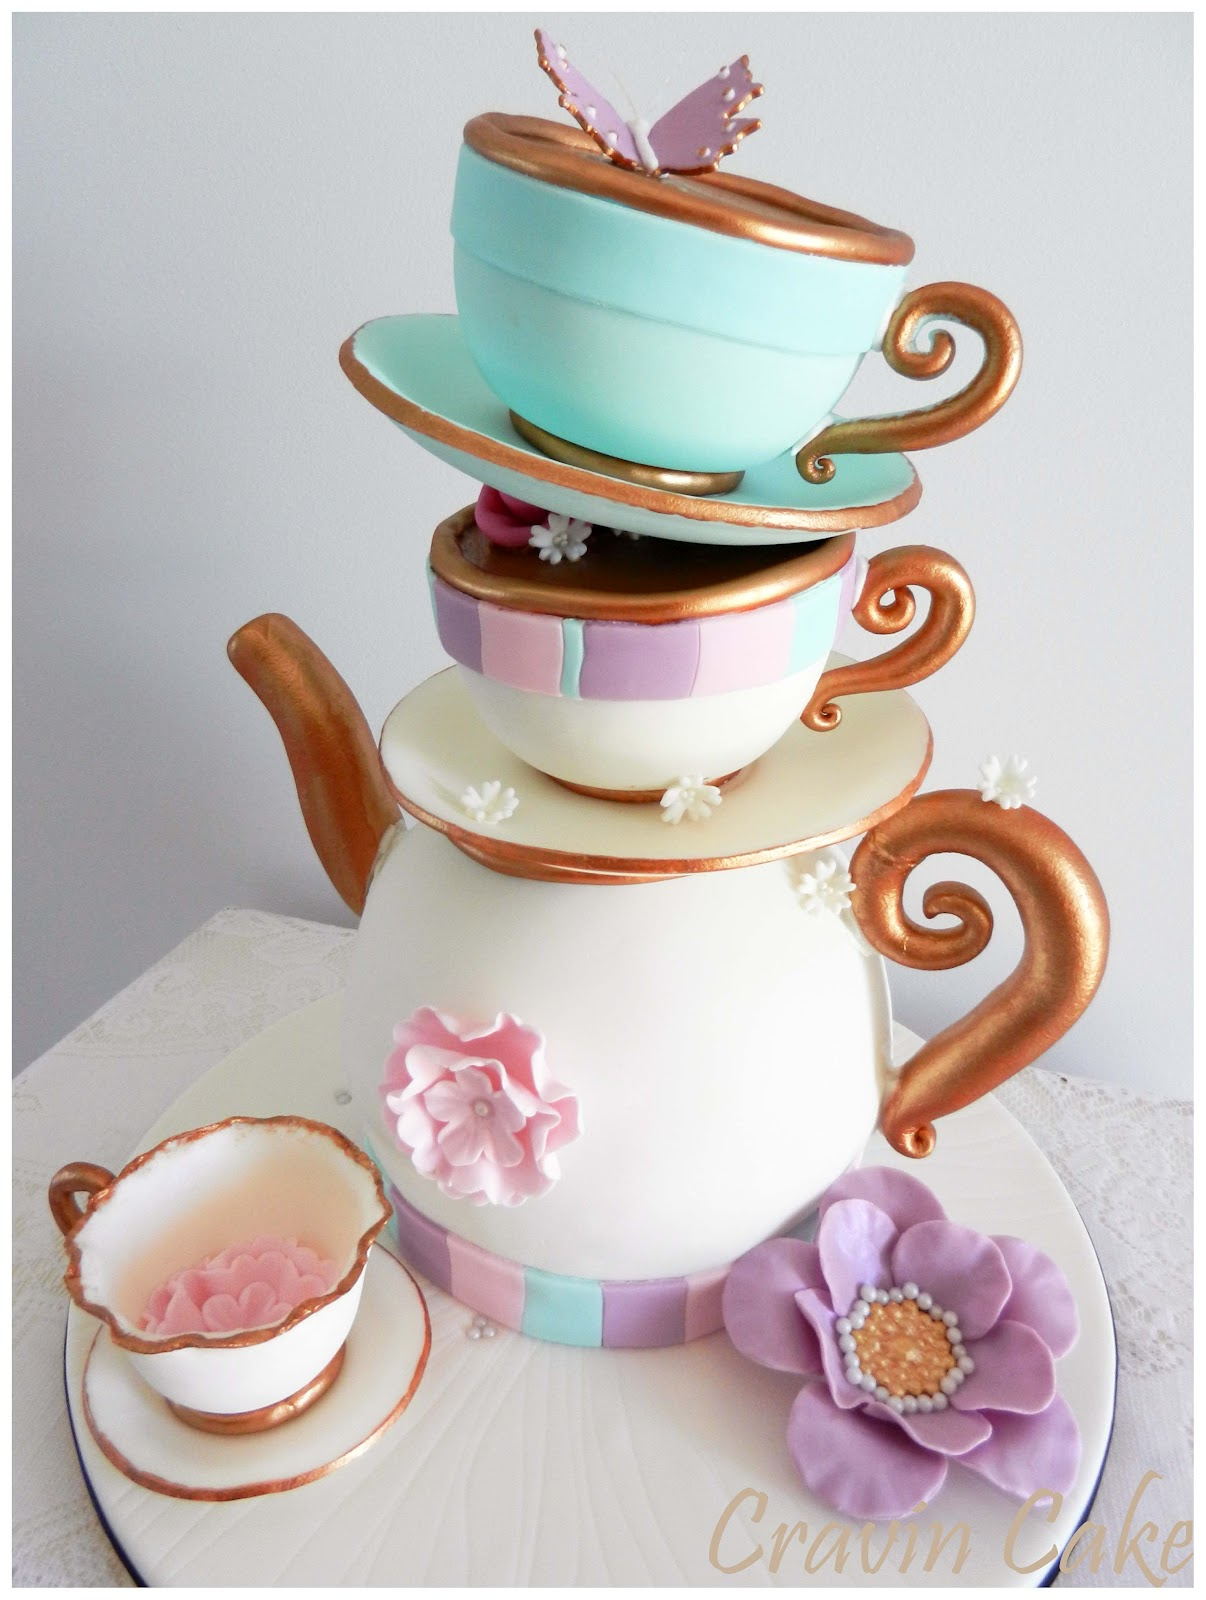 Tea Party Cake Images : Cravin Cake: Tea Party Bridal Shower Cake